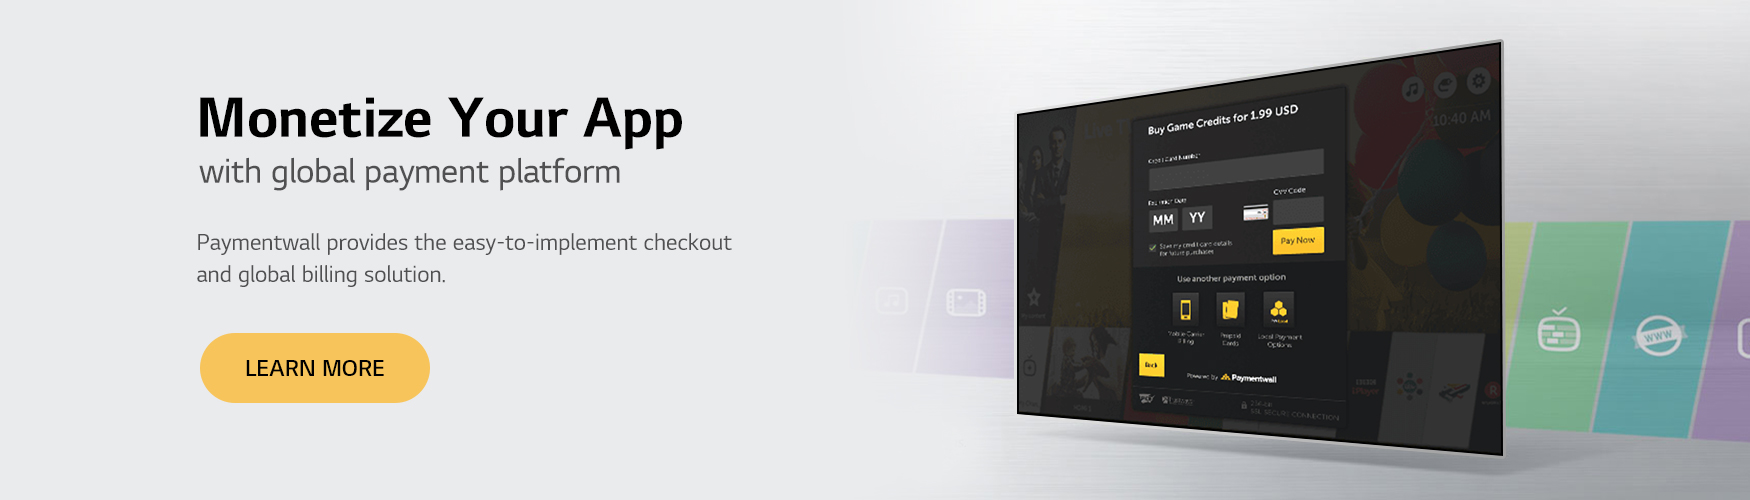 In-app purchase banner